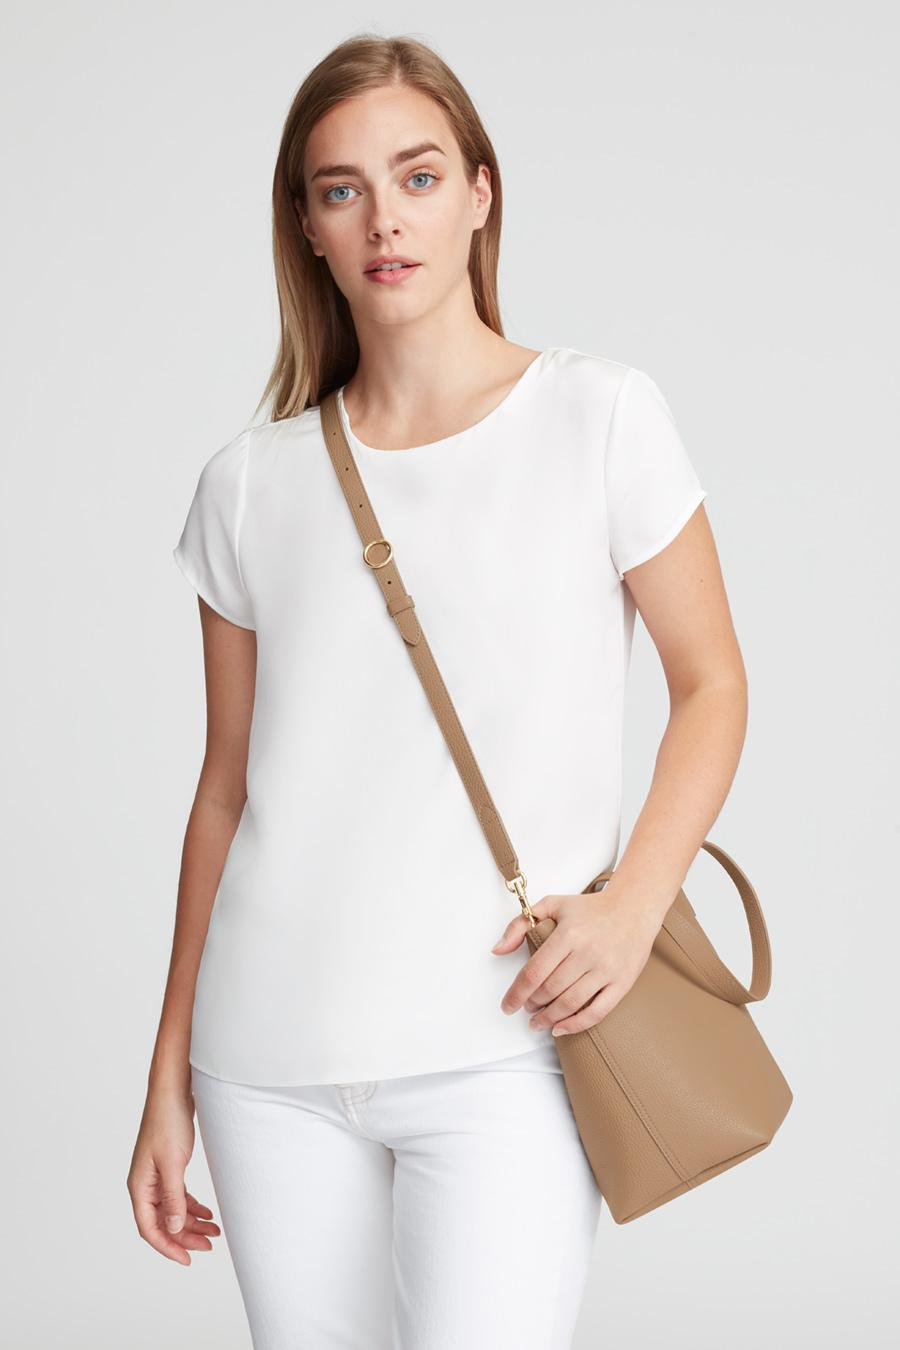 Women's Small Structured Leather Tote Bag in Cappuccino/Yellow | Pebbled Leather by Cuyana 3